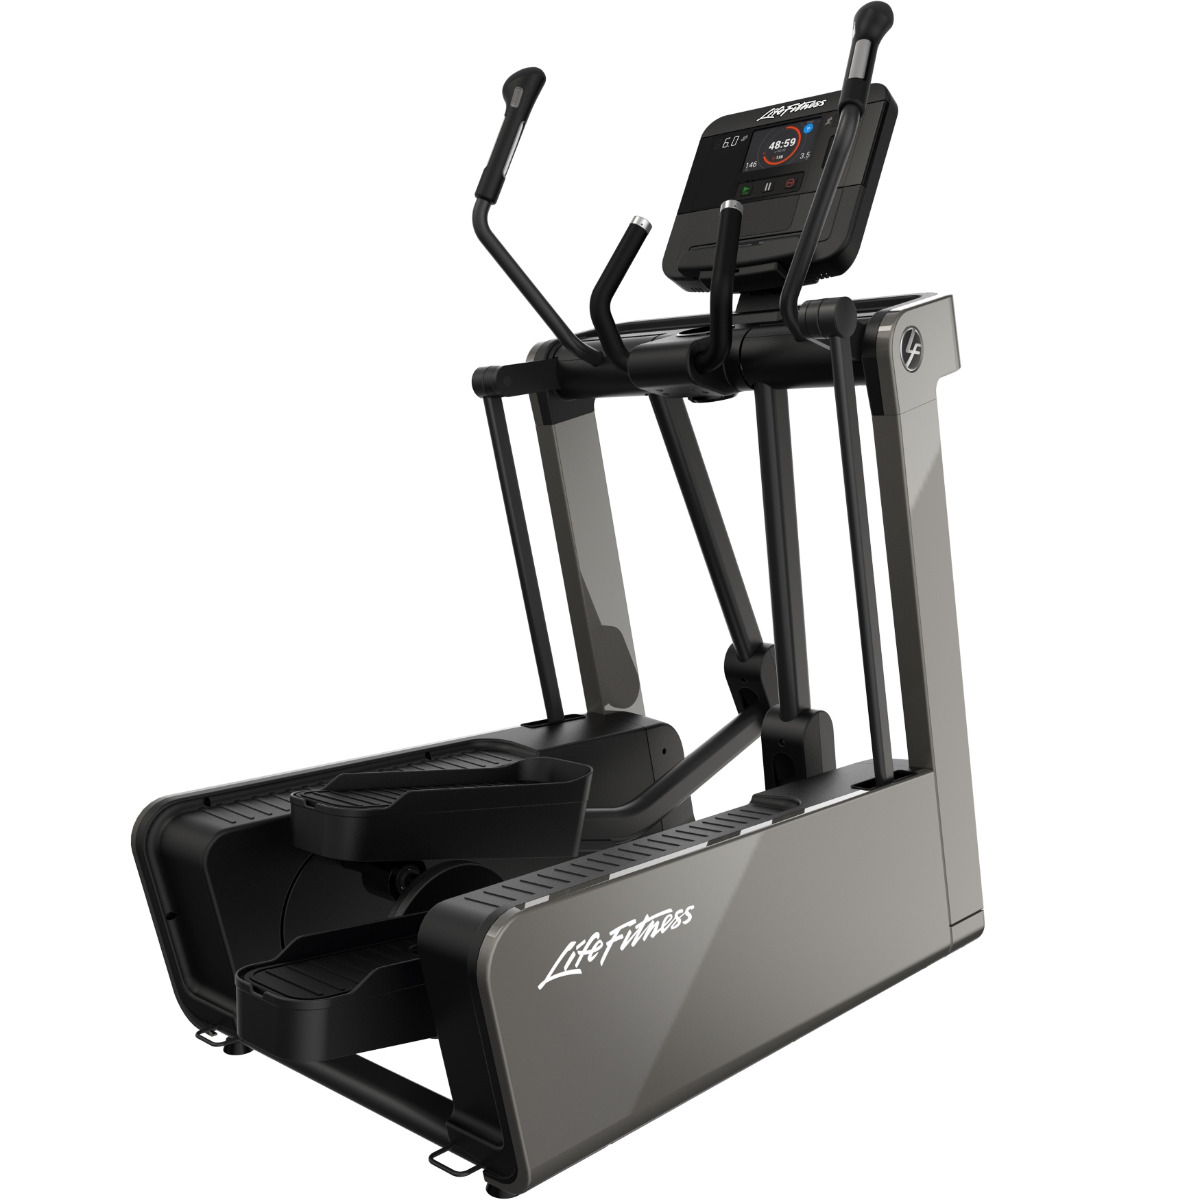 Life Fitness FS6 Elliptical Cross Trainer (Titanium)